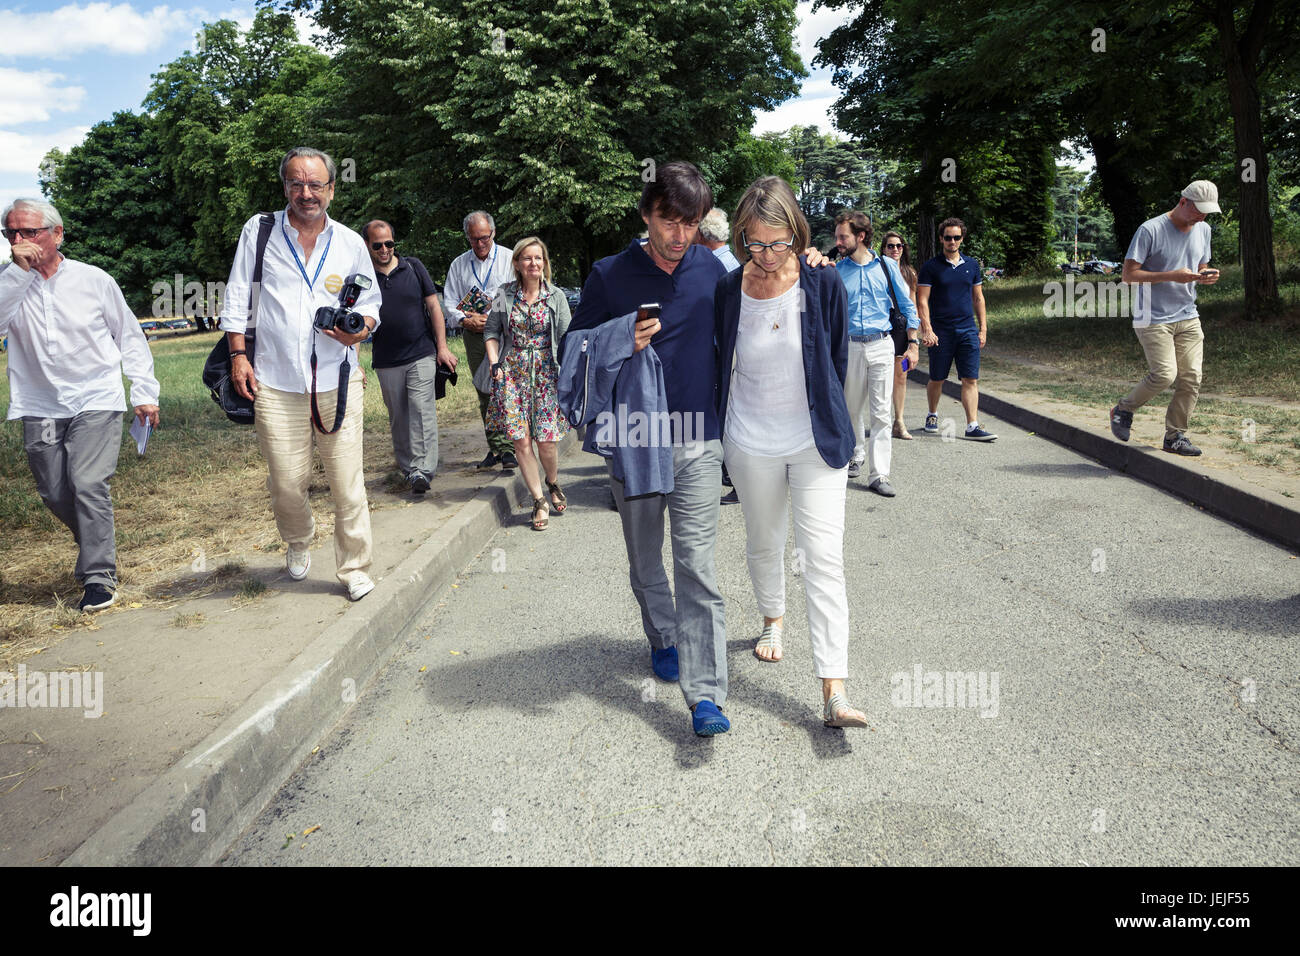 Paul Barlet / Le Pictorium -  Visit of Nicolas Hulot and Francoise Nyssen to the GoodPlanet Foundation -  25/06/2017 - Stock Image